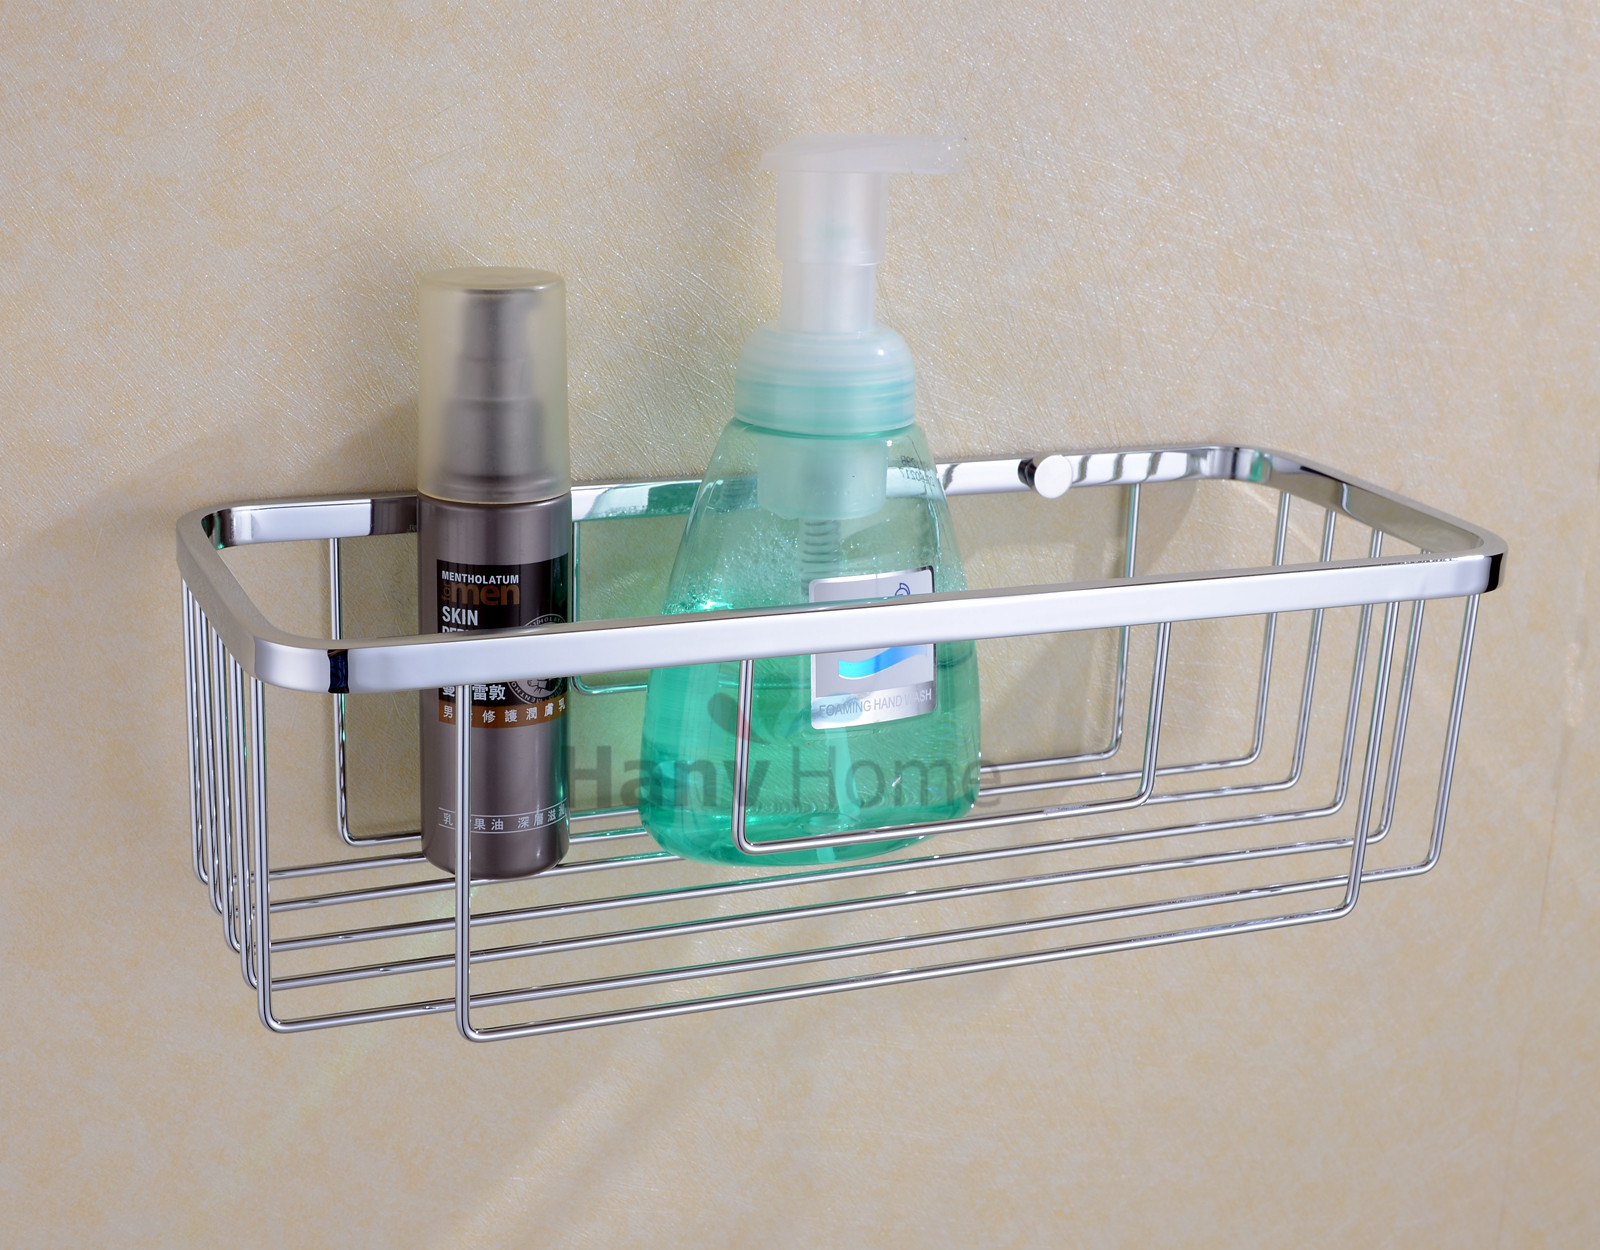 Rustproof Shower Caddy - Stainless Steel Wall Mount Basket Shelves ...